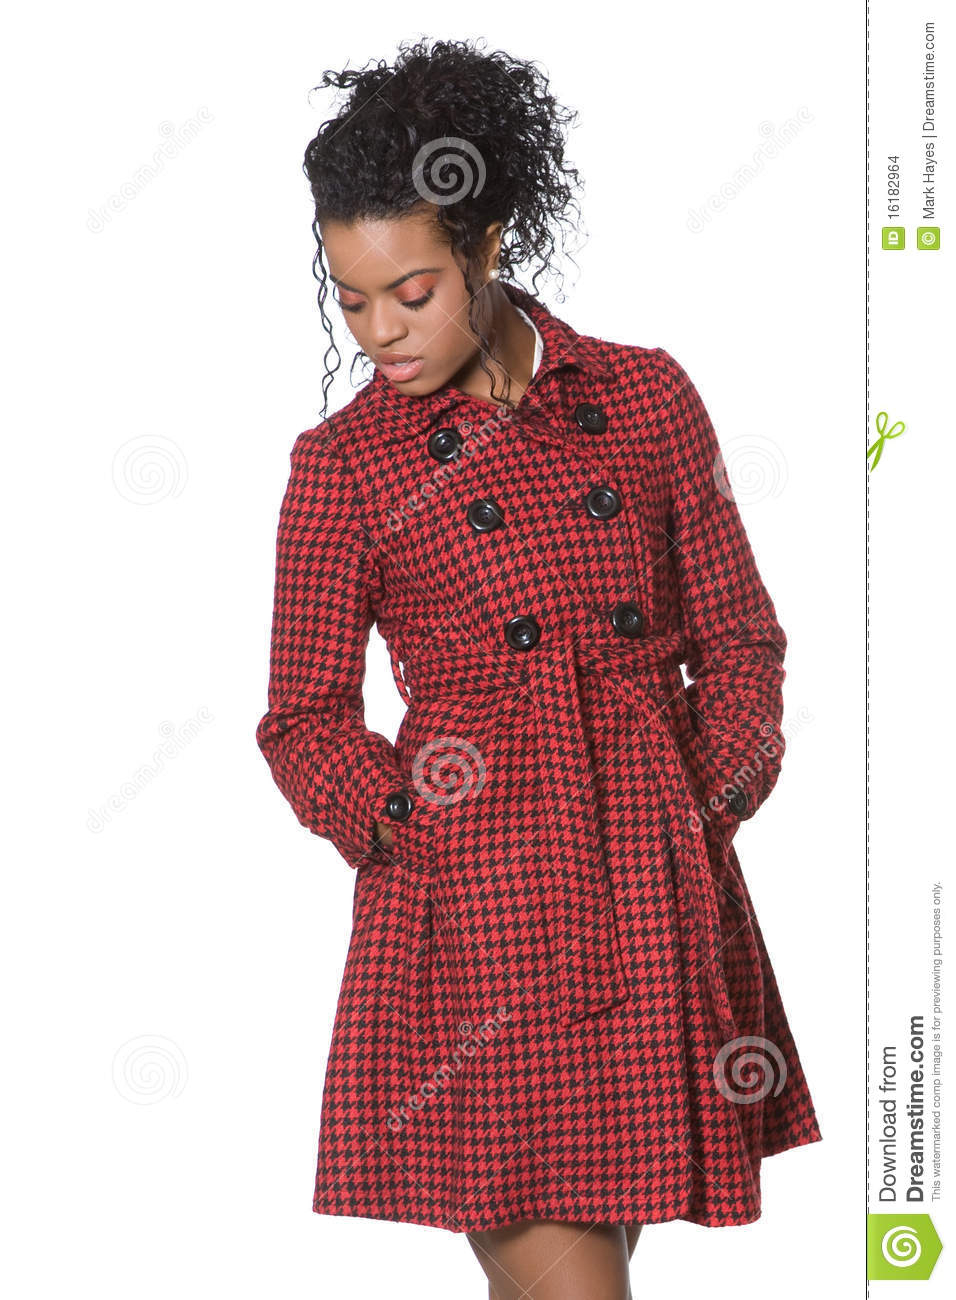 African American Fashion Model Stock Photo